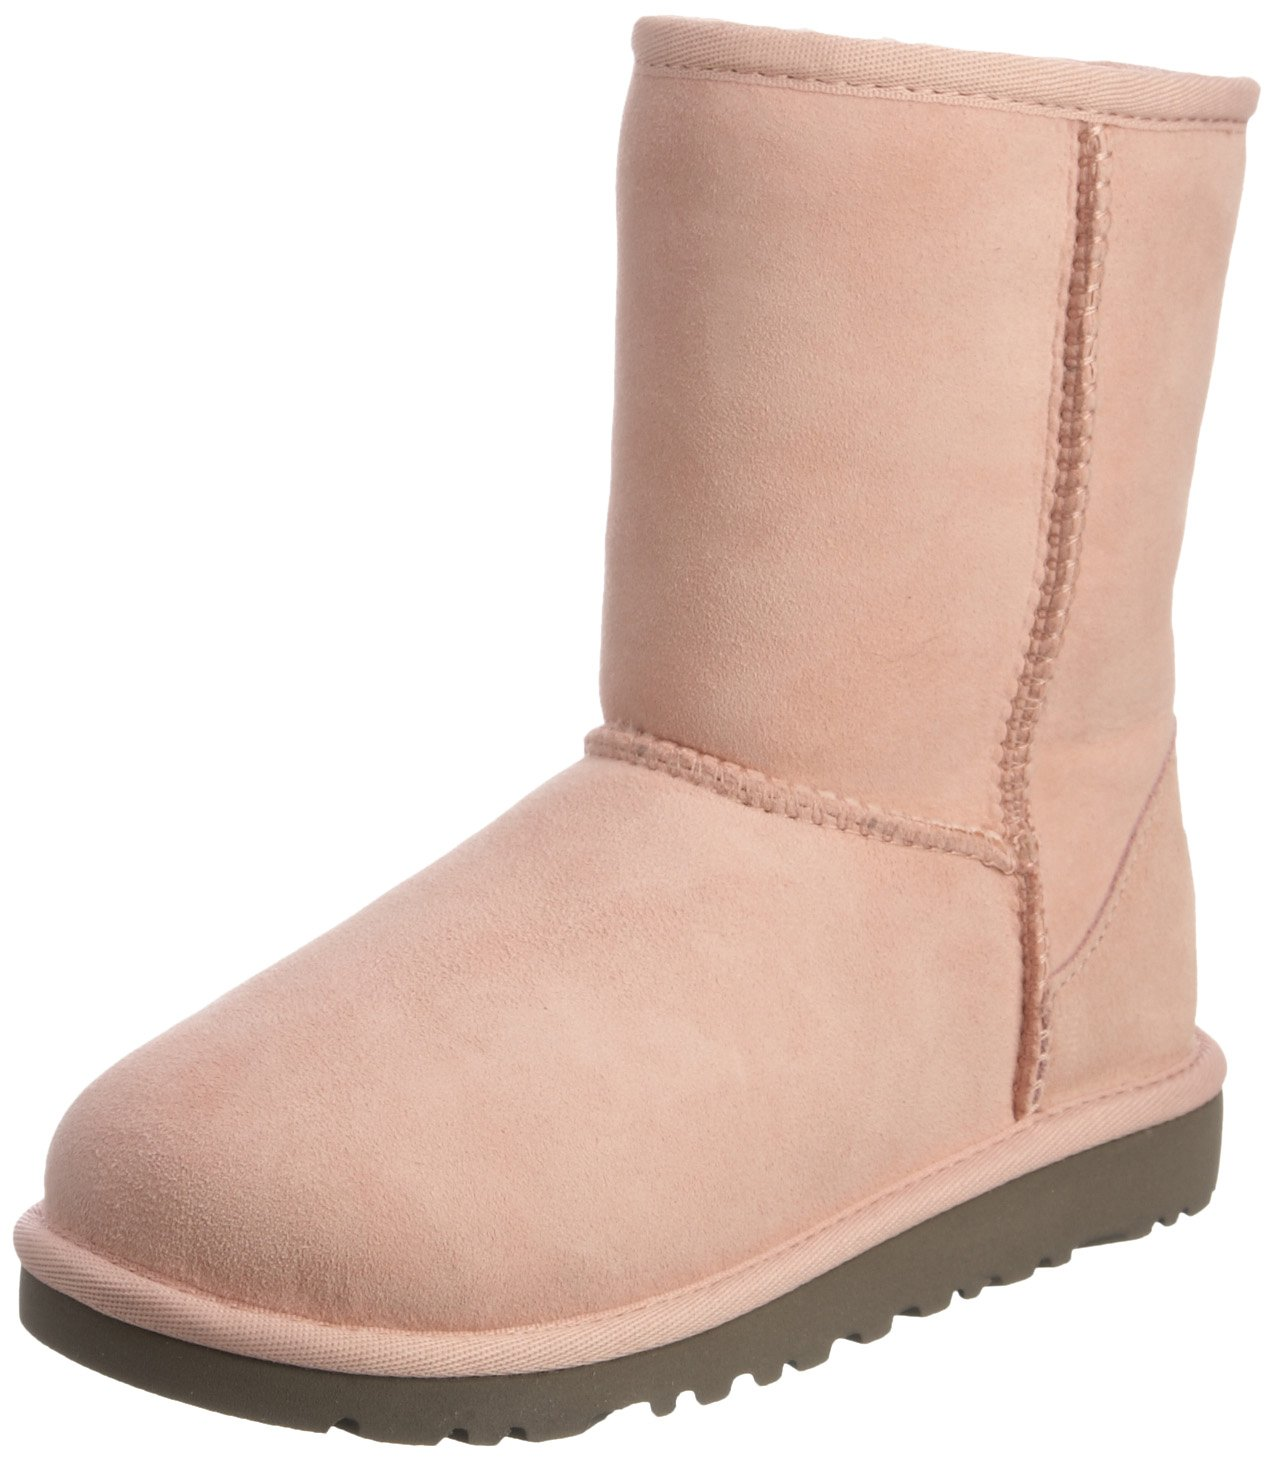 UGG Australia Children's Classic Little Kids Suede Boots,Baby Pink,US 2 Child US by UGG